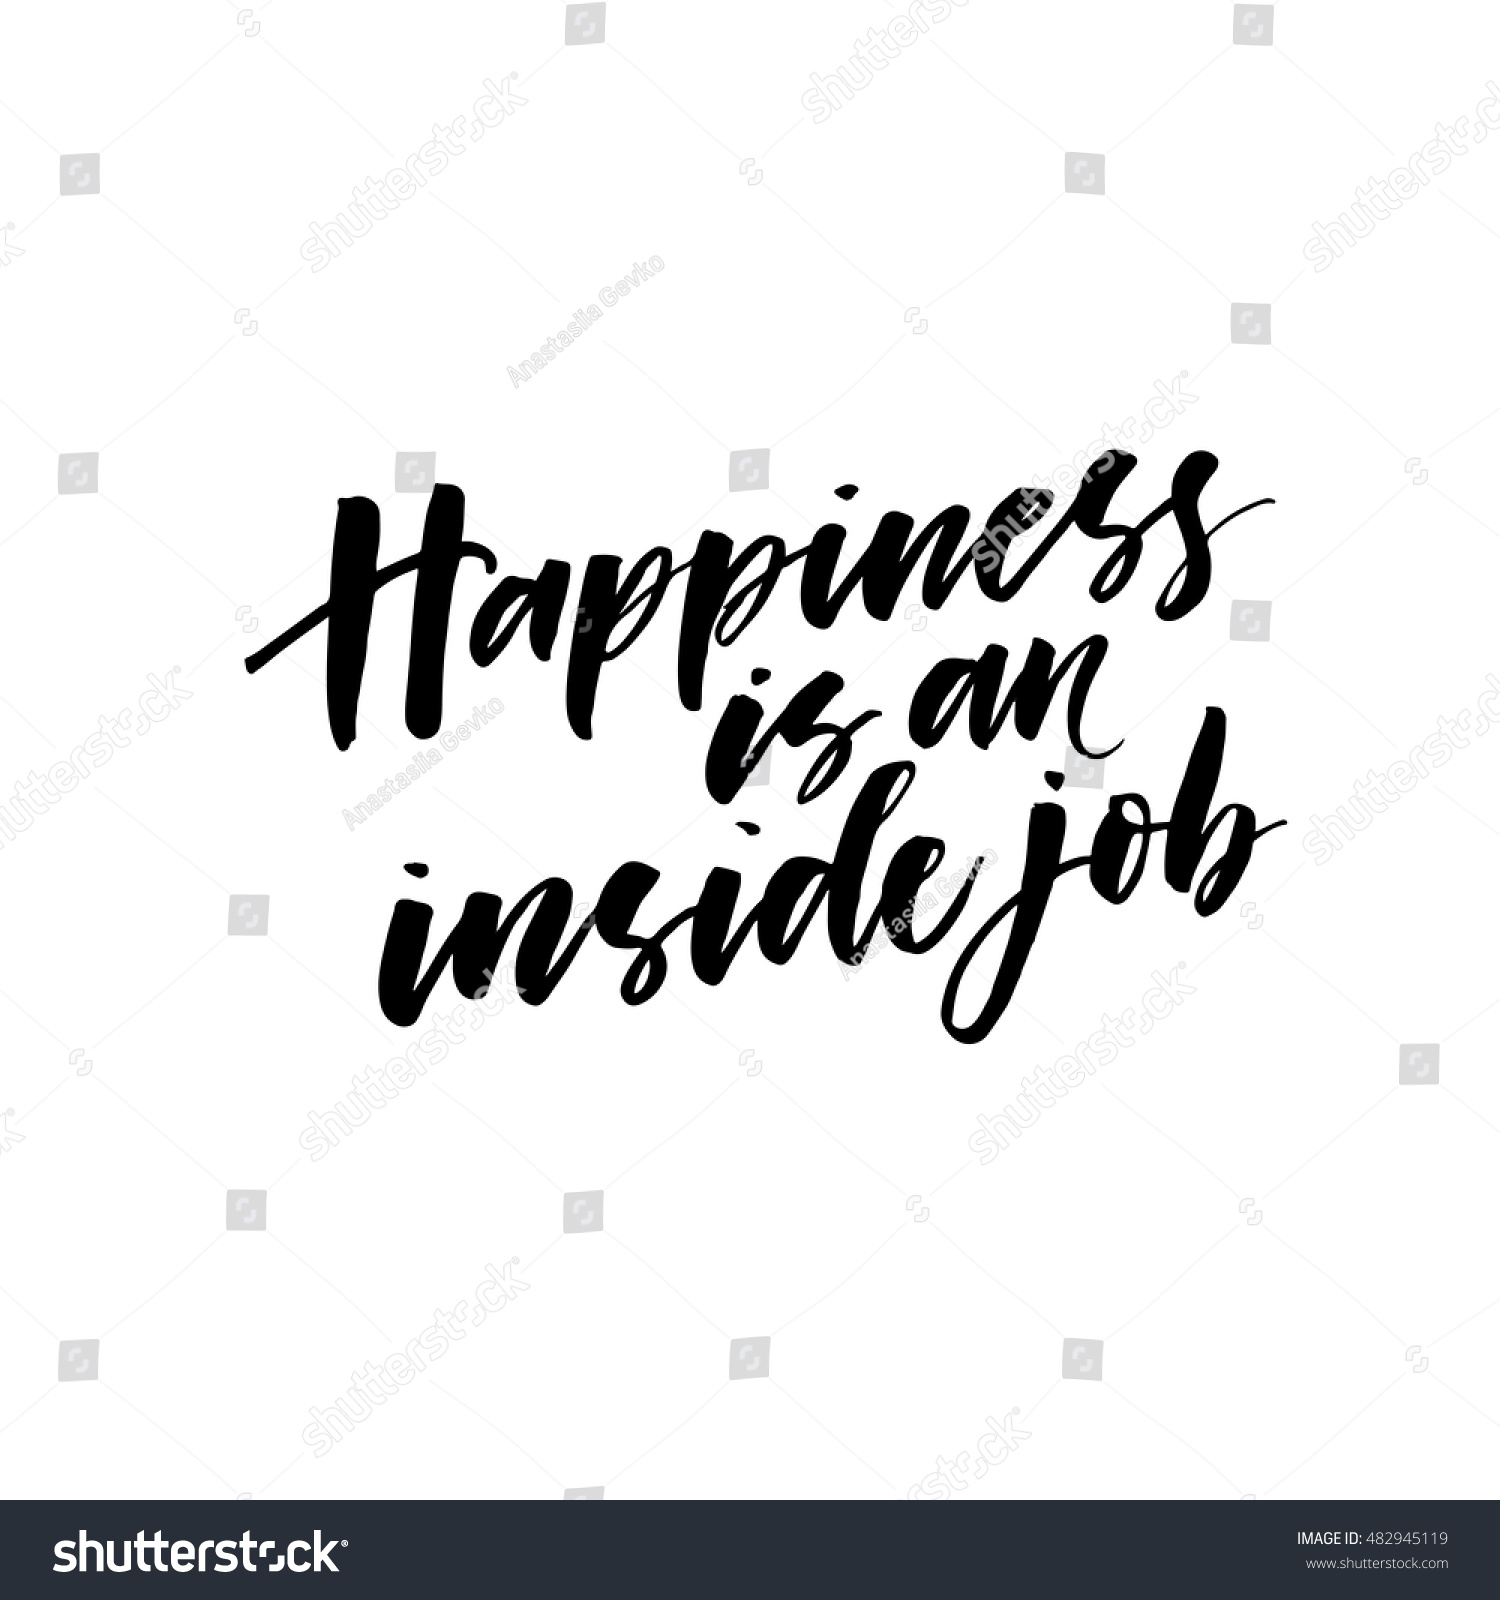 Happiness Inside Job Postcard Hand Drawn Stock Vector